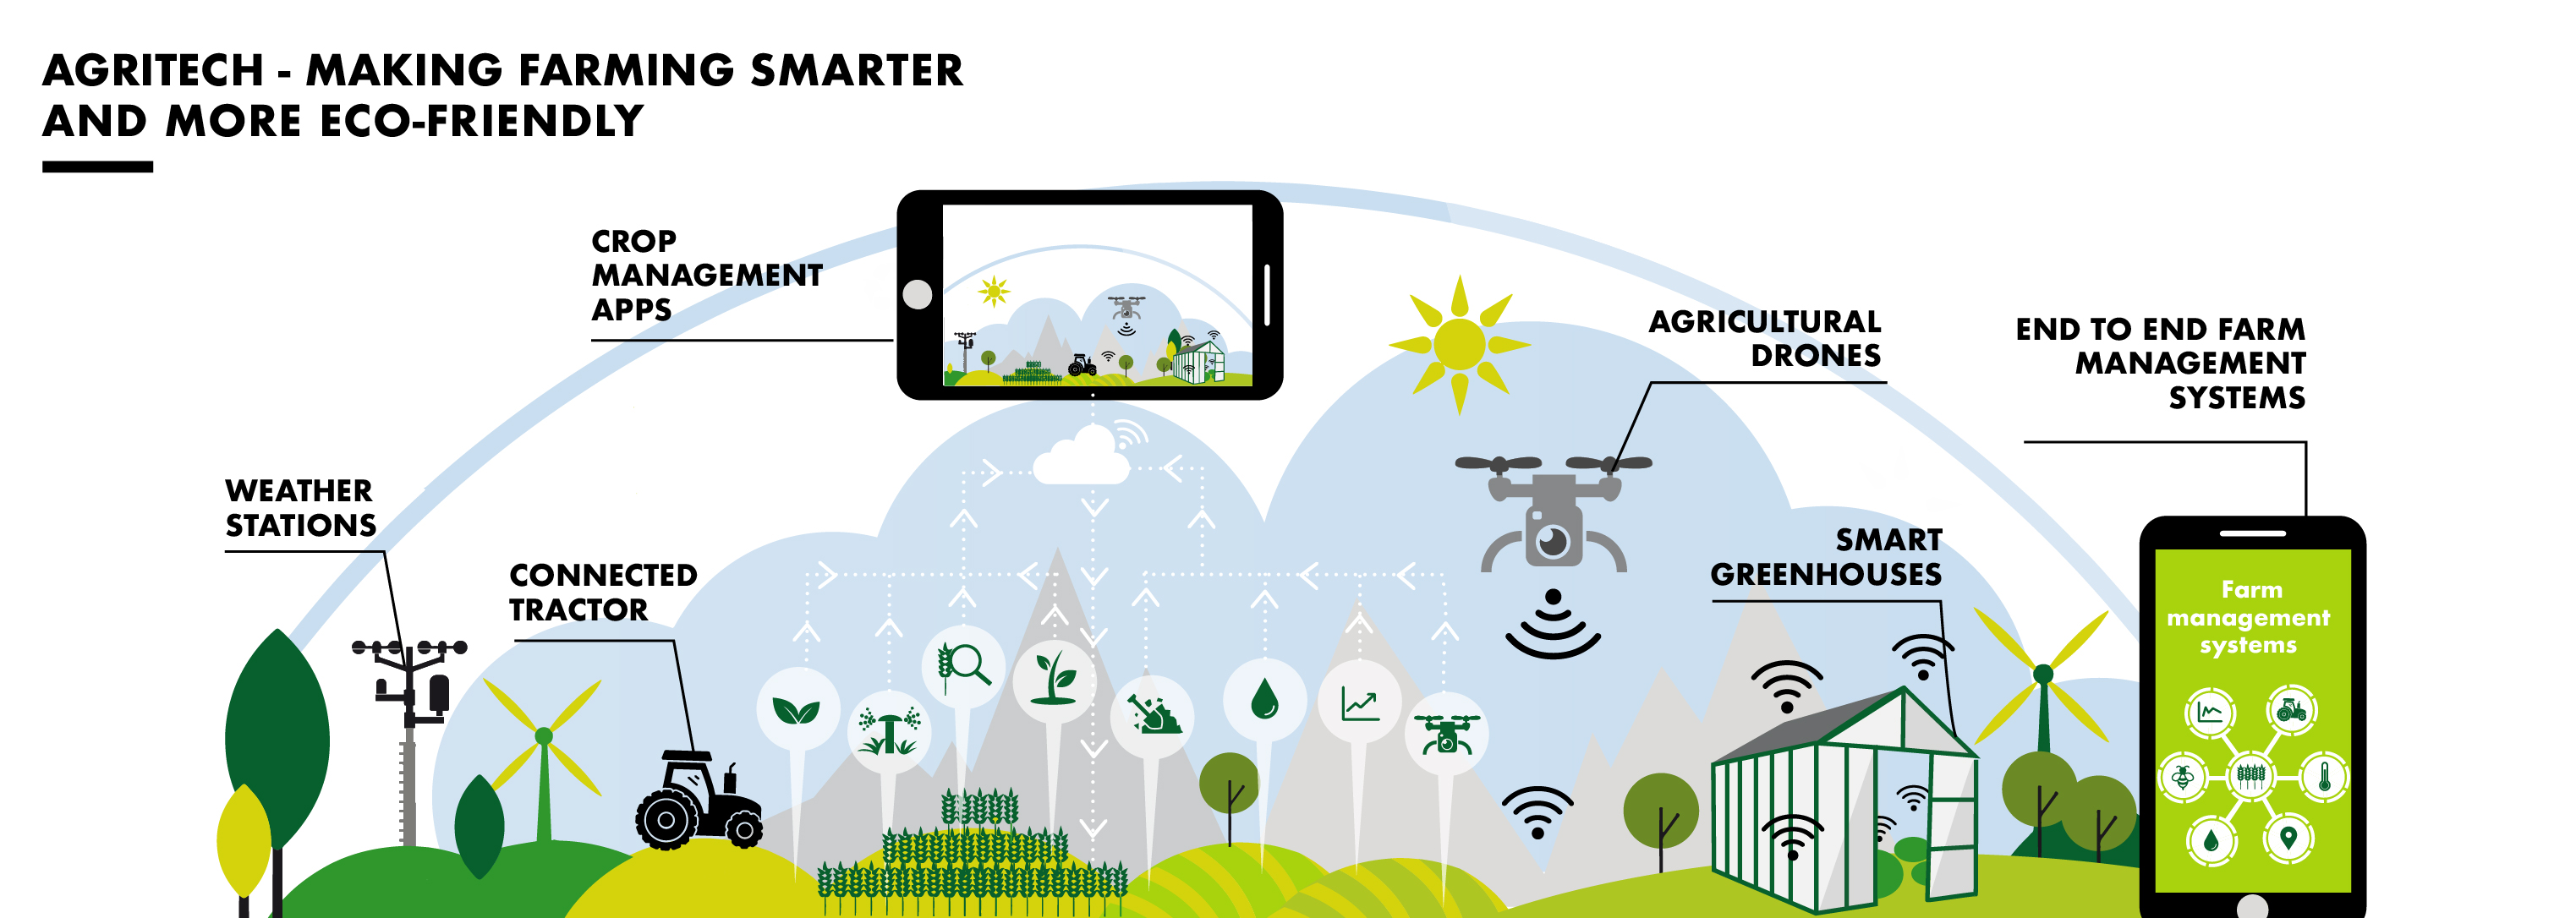 Agritech - Making farming smarter and more eco-friendly